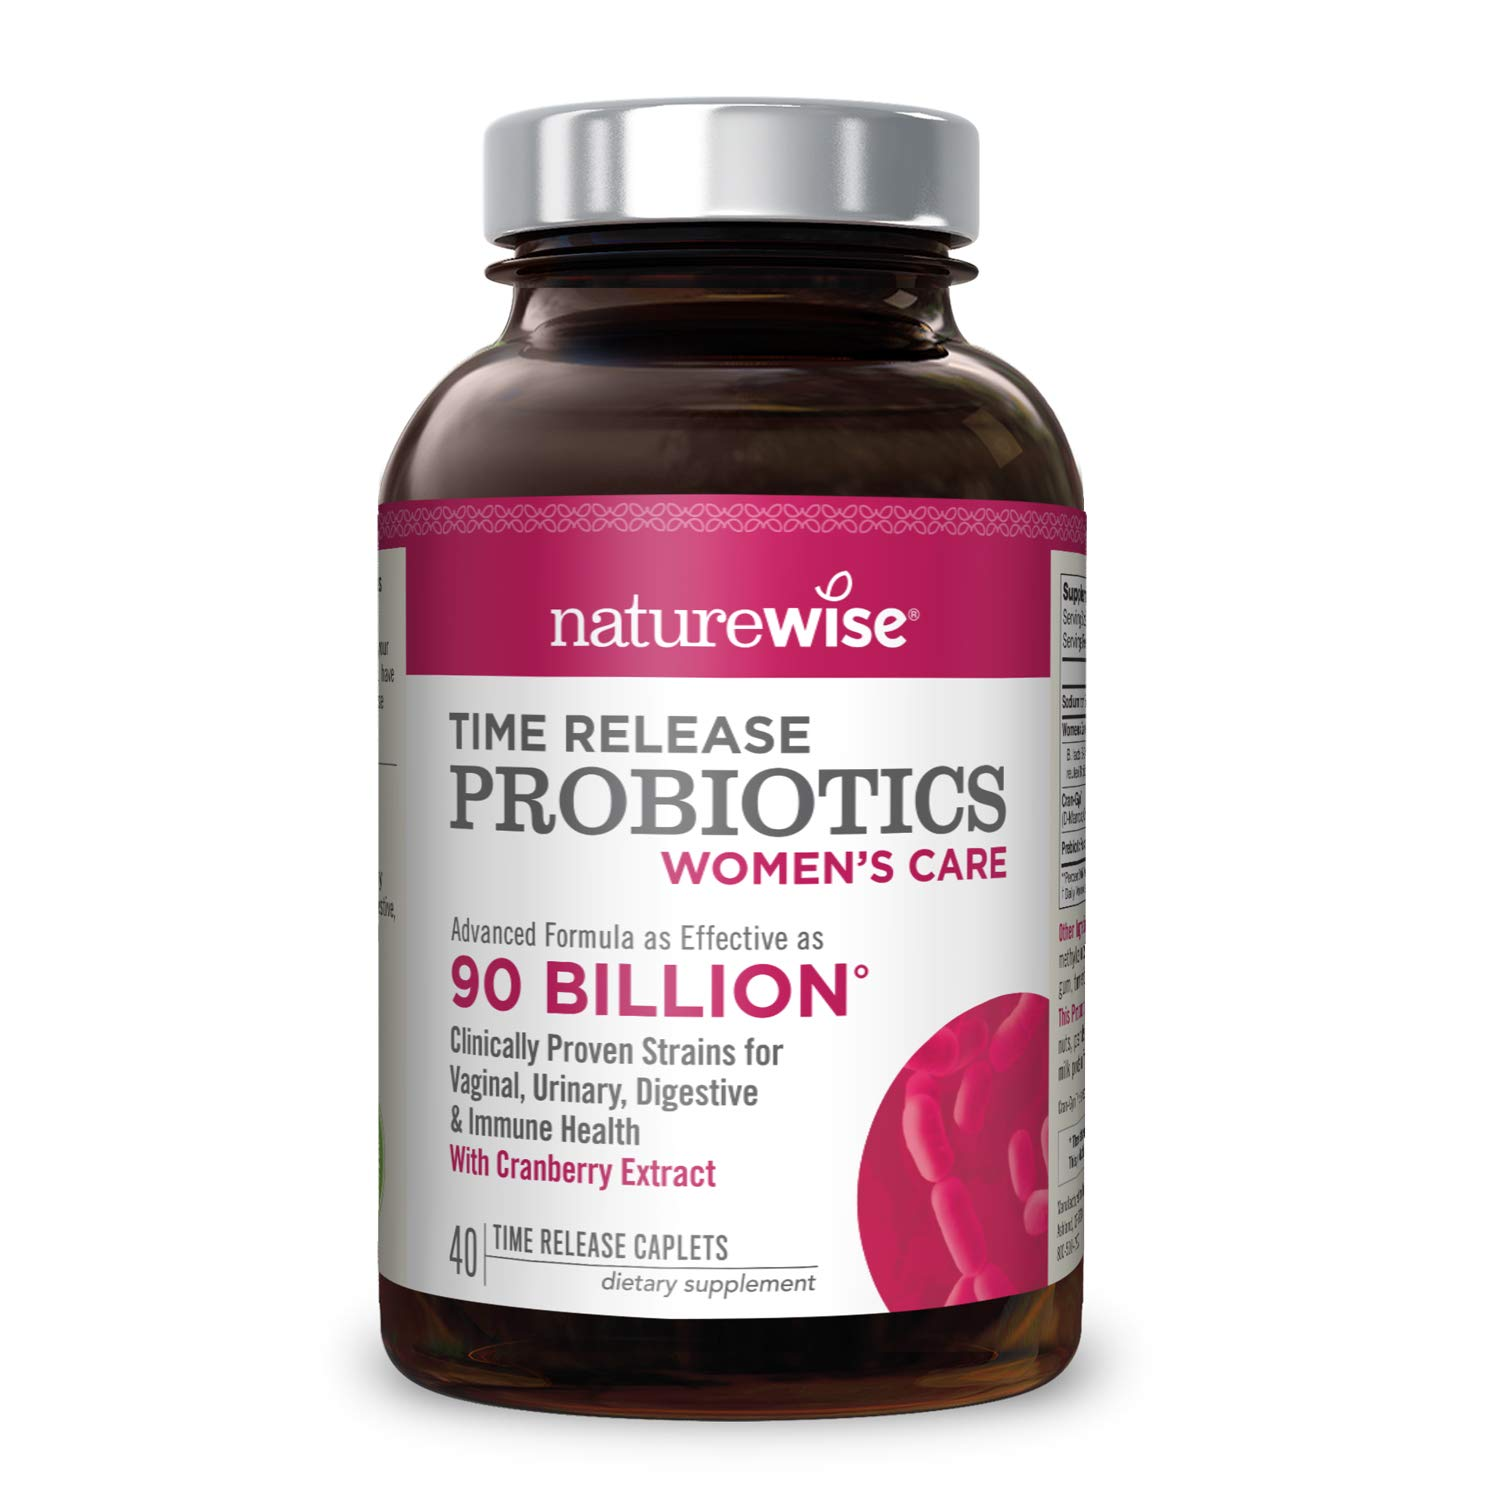 NatureWise Probiotics for Women 90 Billion — Time-Release Probiotic Supplement with Cranberry & D Mannose for Vaginal, Urinary, Digestive and Immune Health (Packaging May Vary)